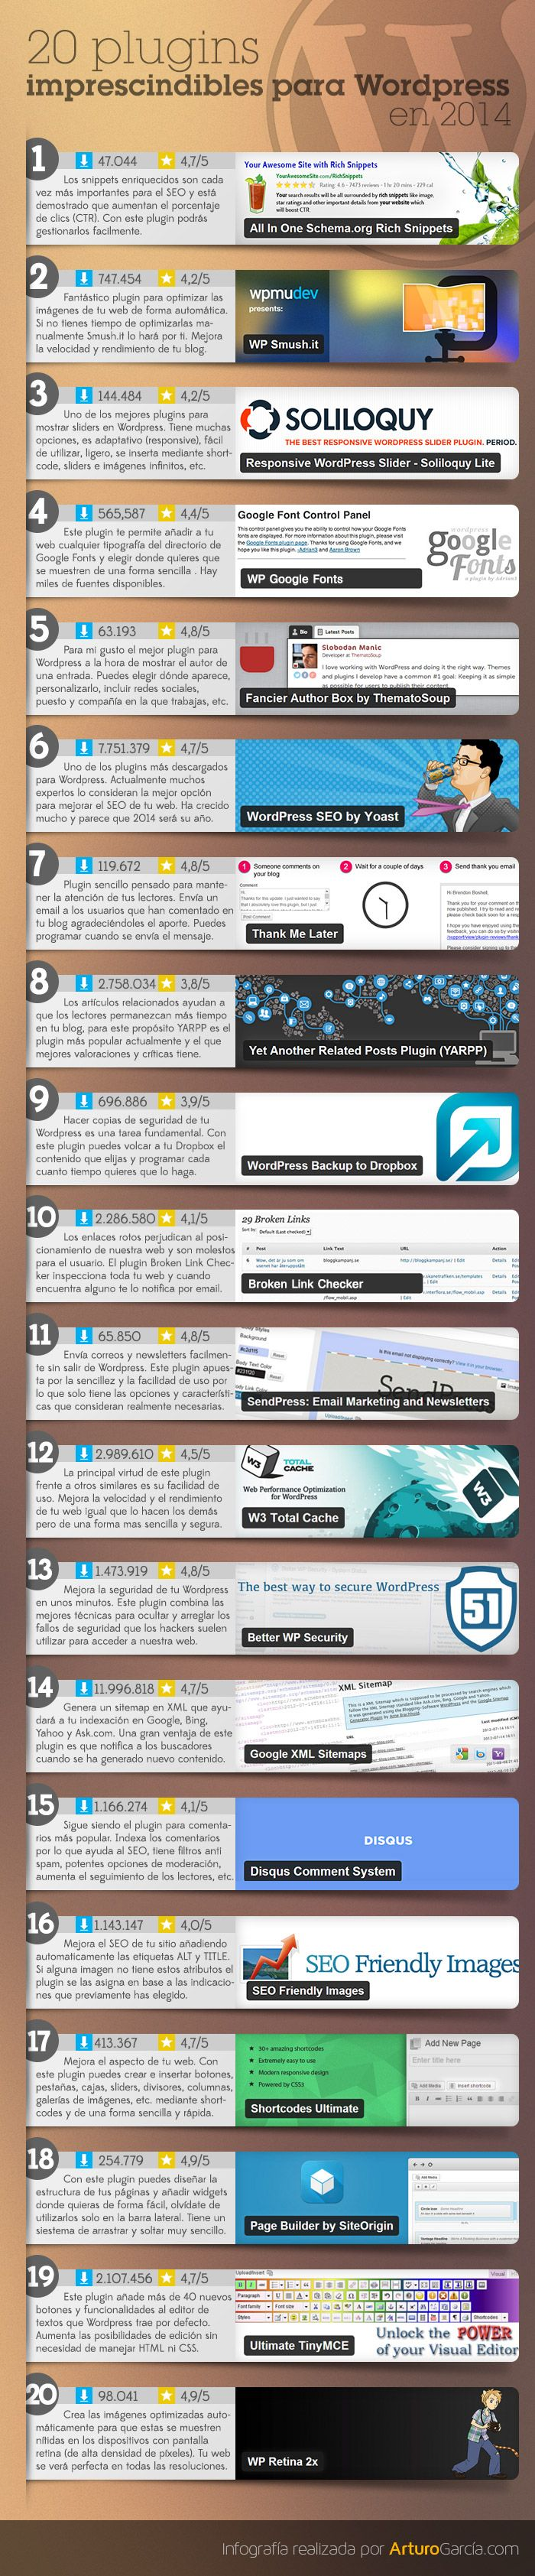 20 plugins imprescindibles para Wordpress en 2014 (infografía)